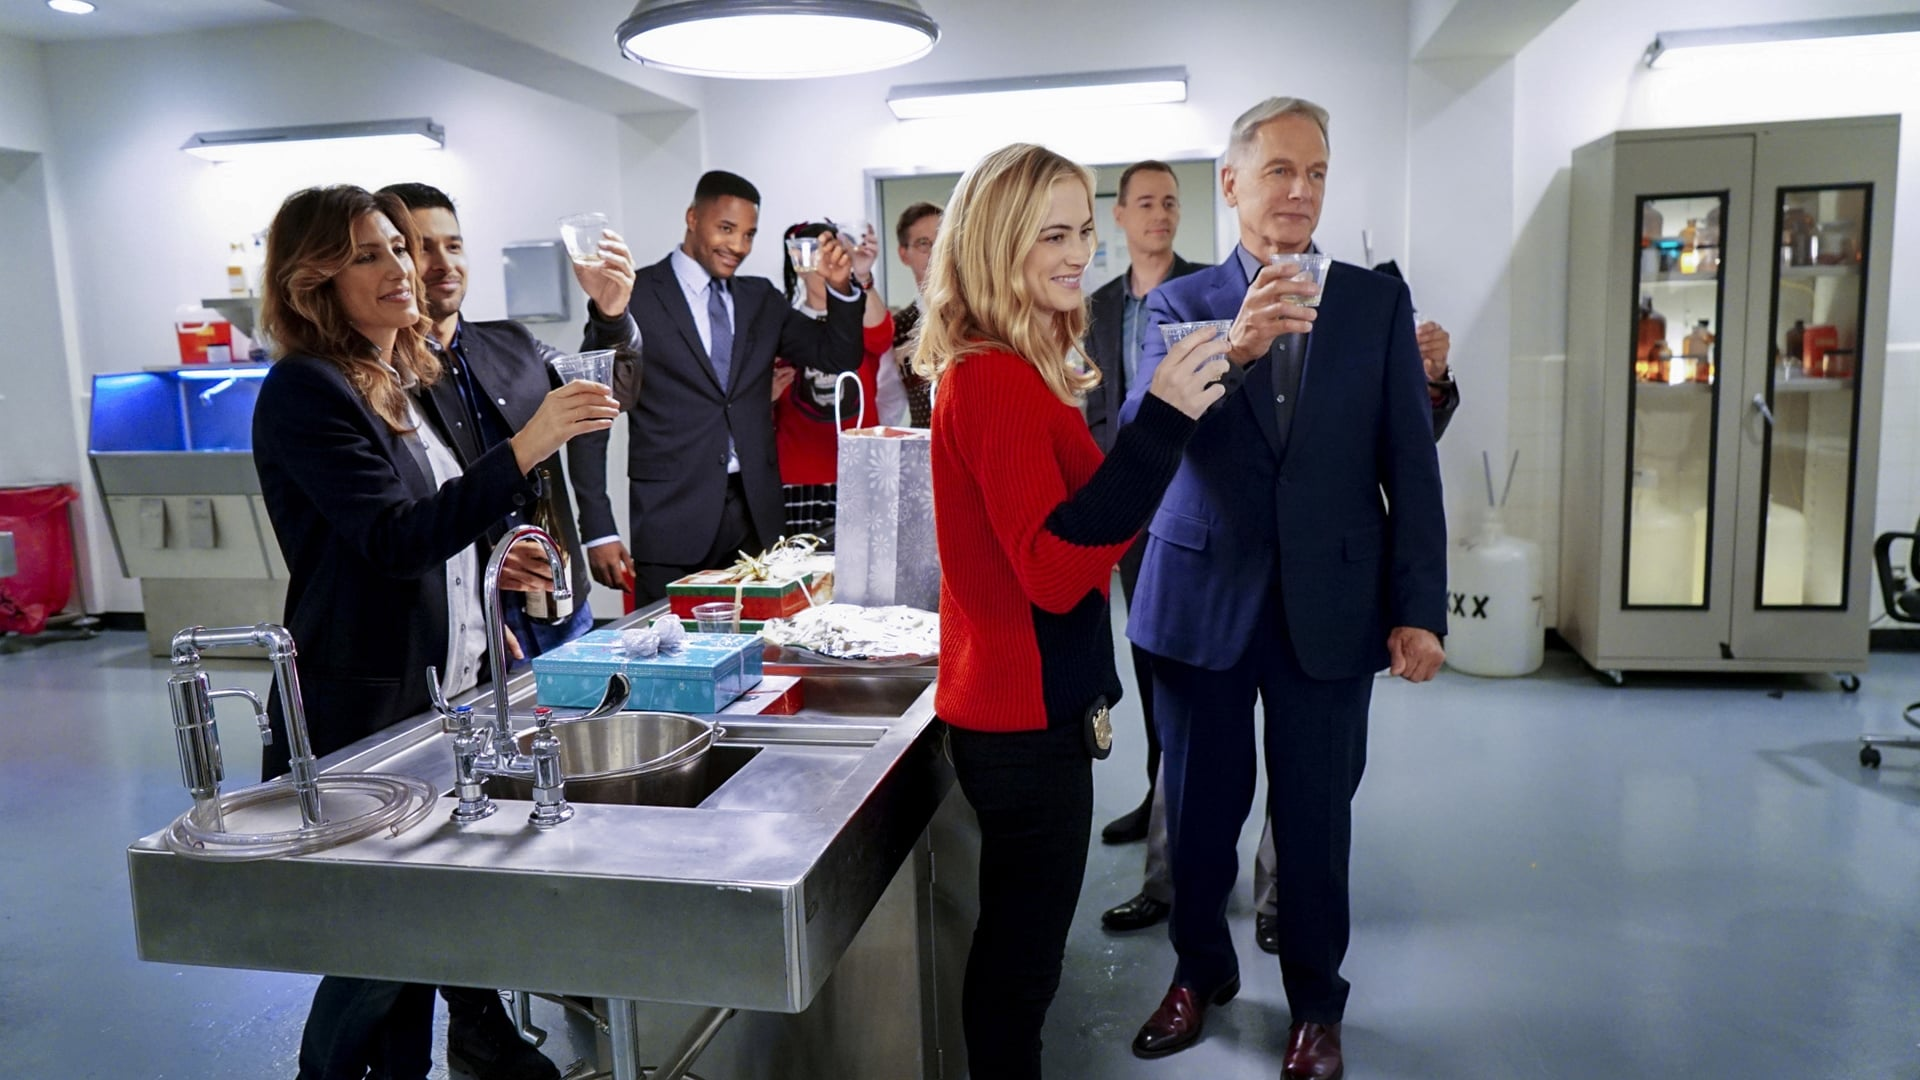 how to watch ncis season 10 online